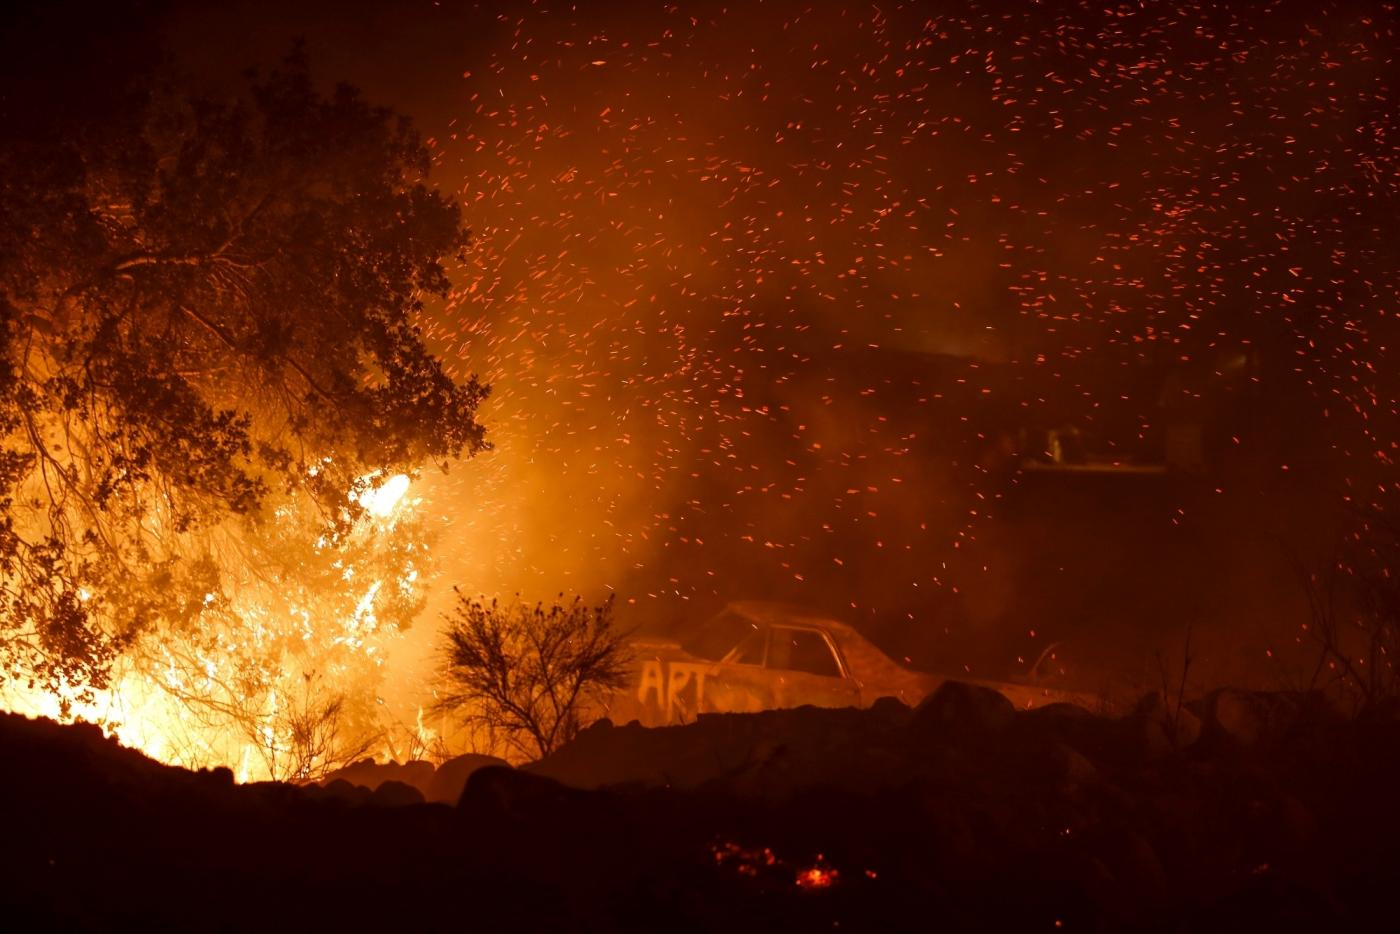 SANTA PAULA (U.S.), Dec. 5, 2017 (Xinhua) -- Photo taken on Dec. 5, 2017 shows a wildfire burning in Santa Paula, Ventura, the United States. Fast moving brush fire exploded to more than 10,000 acres (40 square km) Monday night in Ventura County in the western U.S. state of California, threatening homes in nearby cities and leading to the death of one person. (Xinhua/Zhao Hanrong/IANS) by .